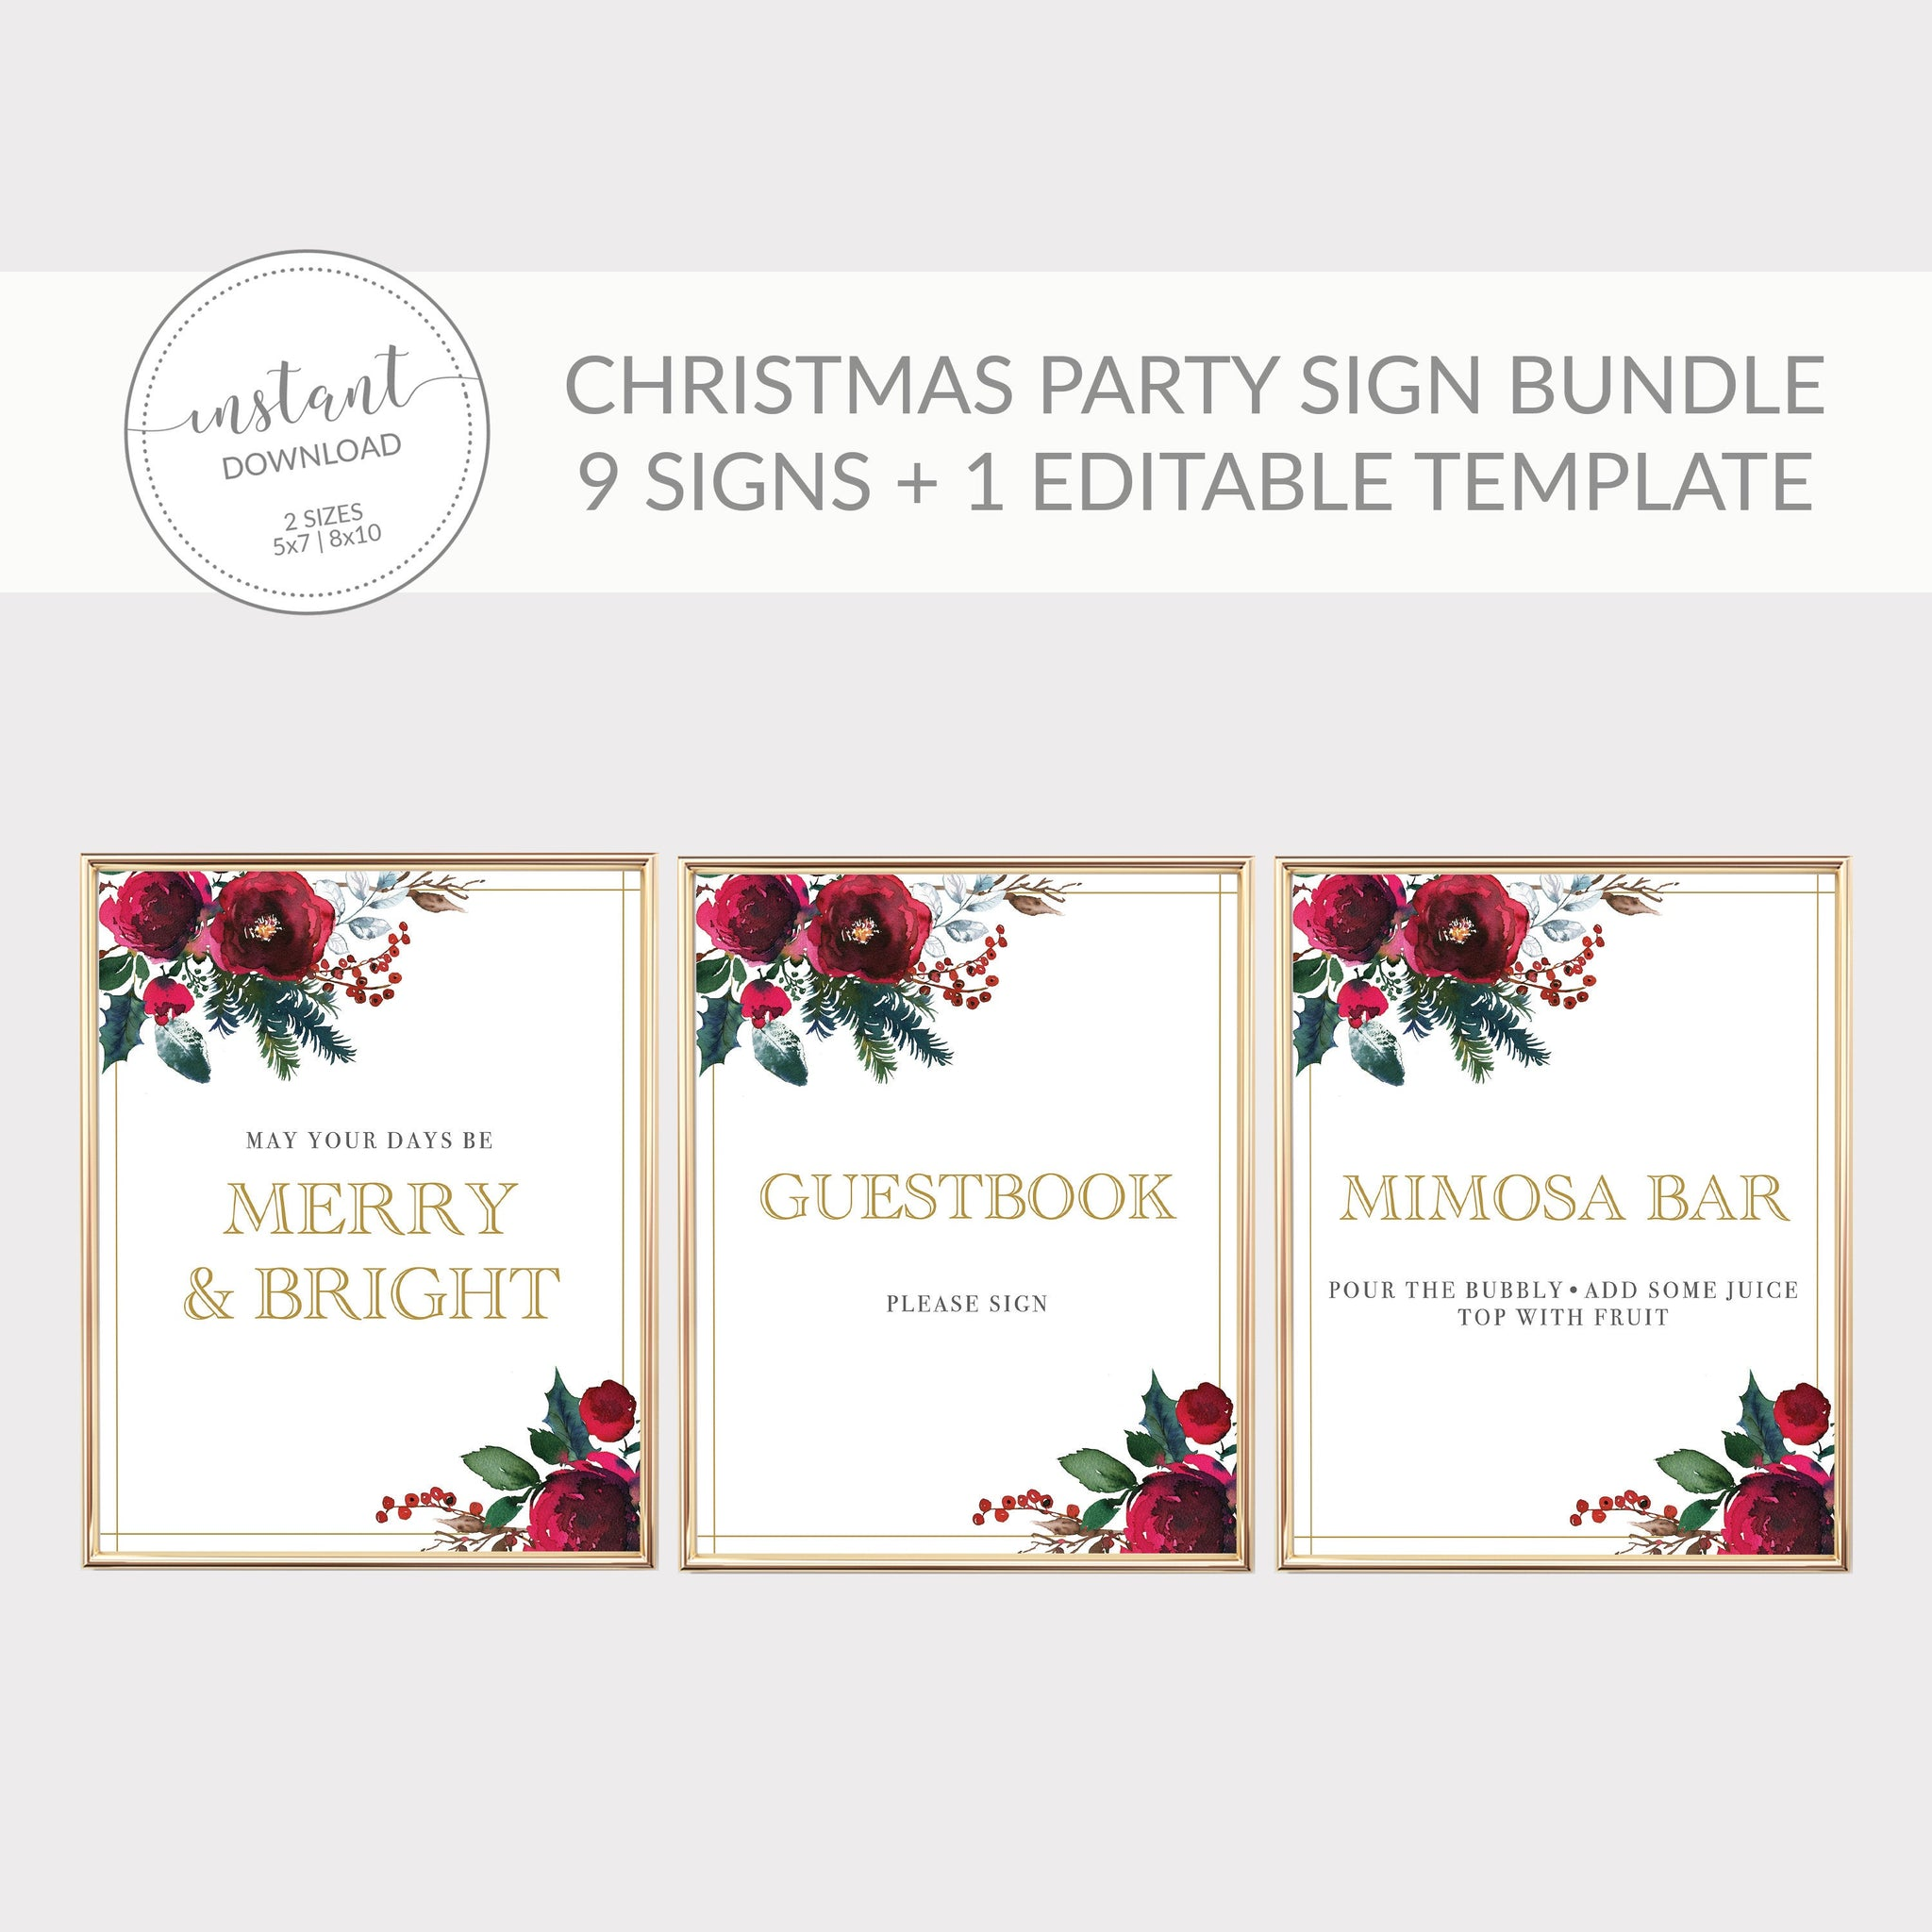 Christmas Party Sign Bundle - Christmas Decor - CG100 - @PlumPolkaDot